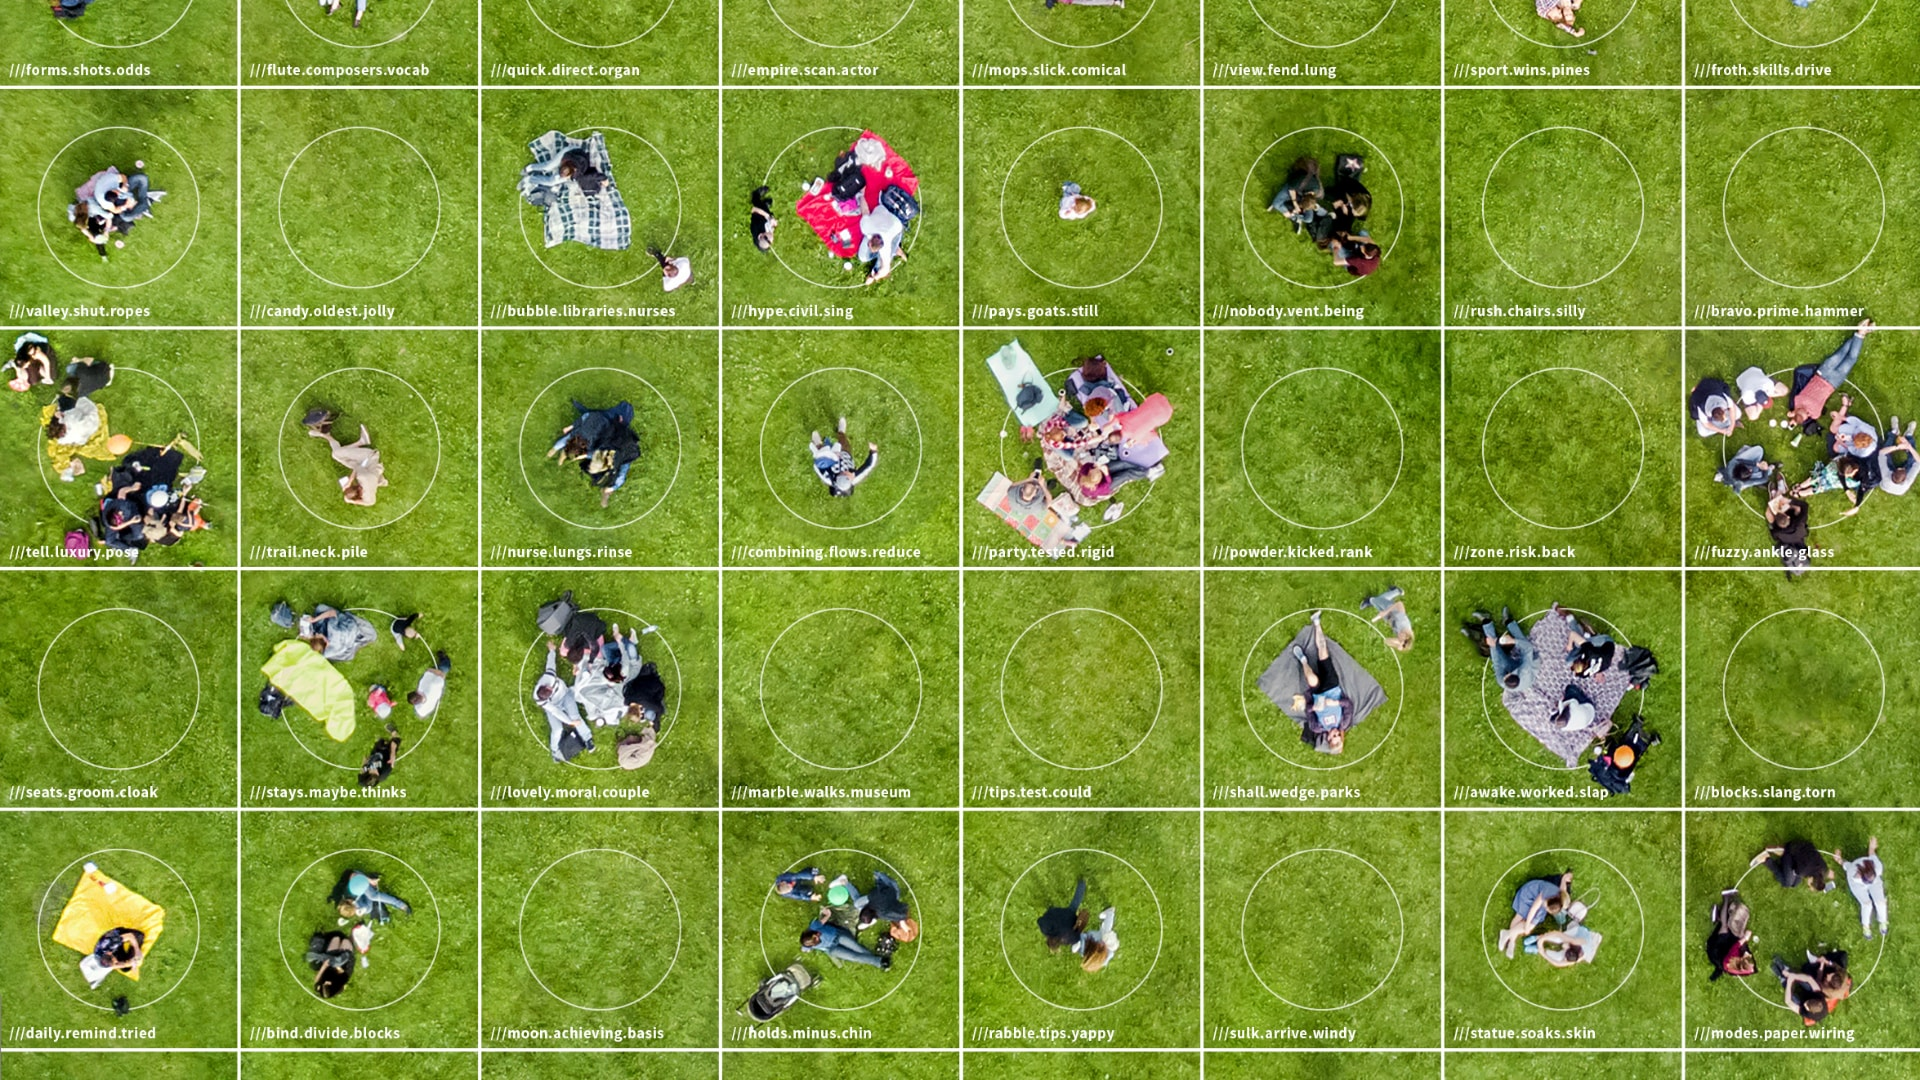 aerial view of people picnicing with grid showing what3words addresses